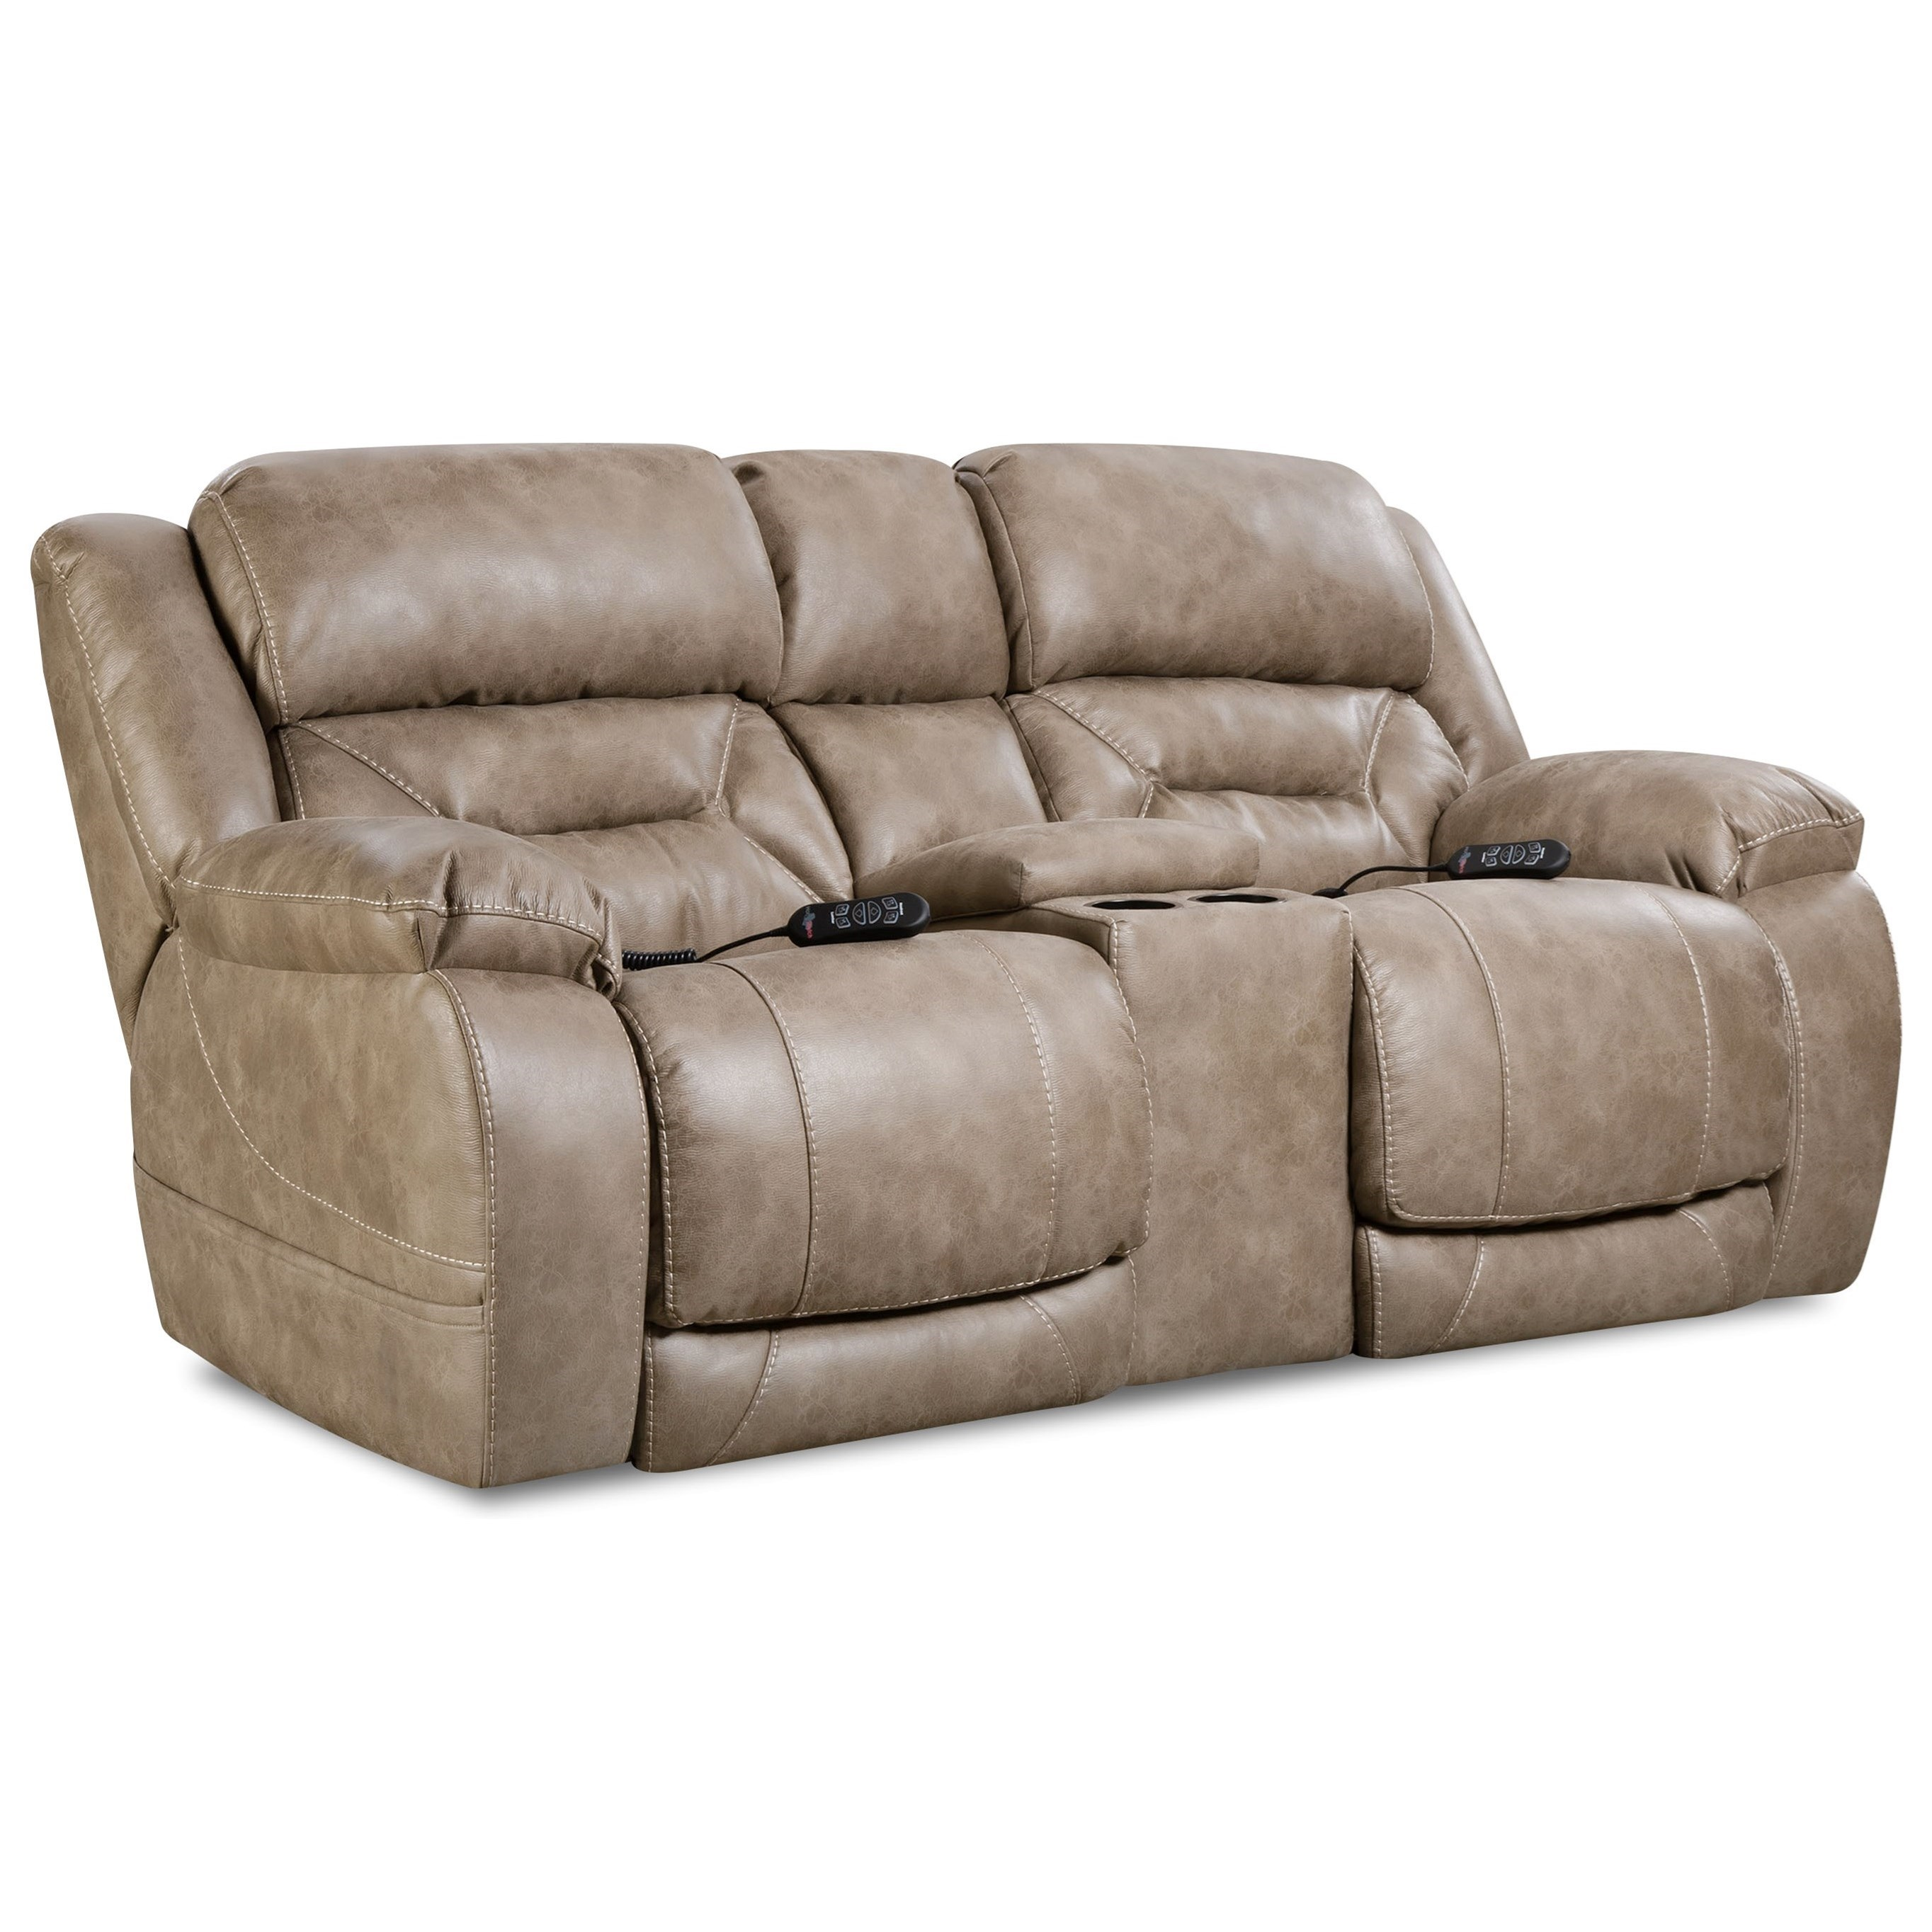 HomeStretch Enterprise Power Reclining Console Loveseat - Item Number: 158-57-17